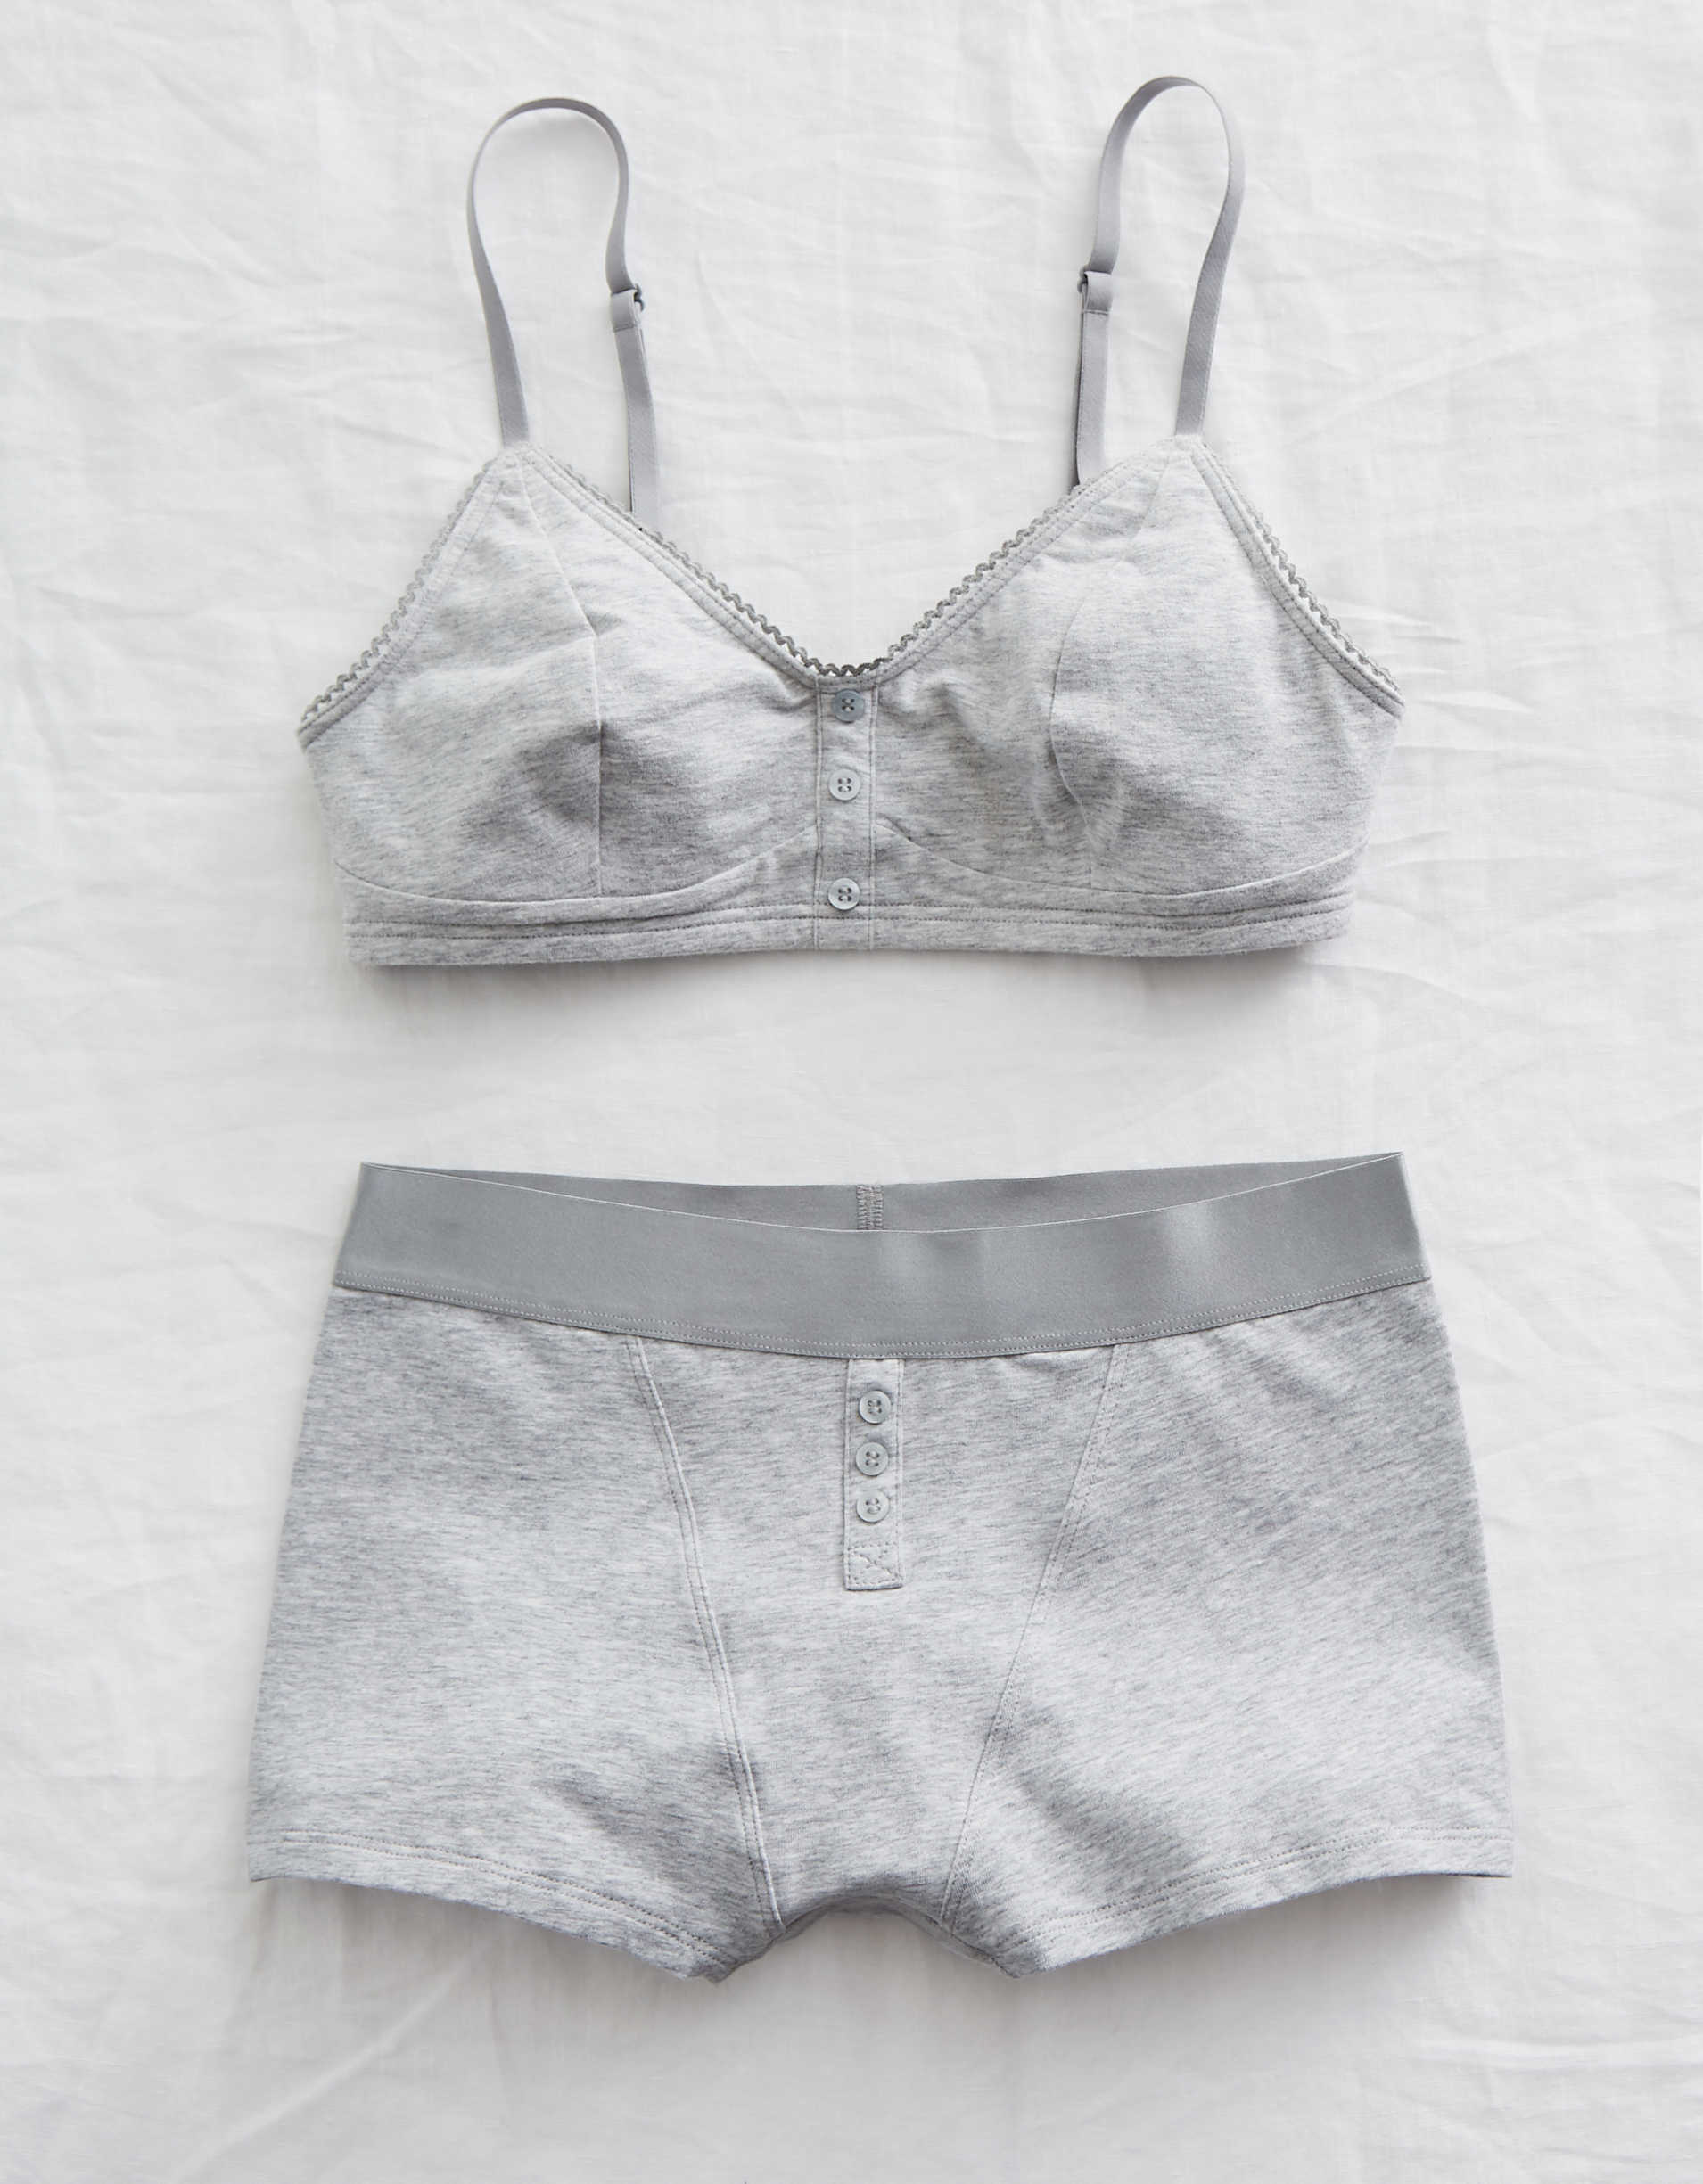 Aerie Cotton Sleep Shortie Underwear